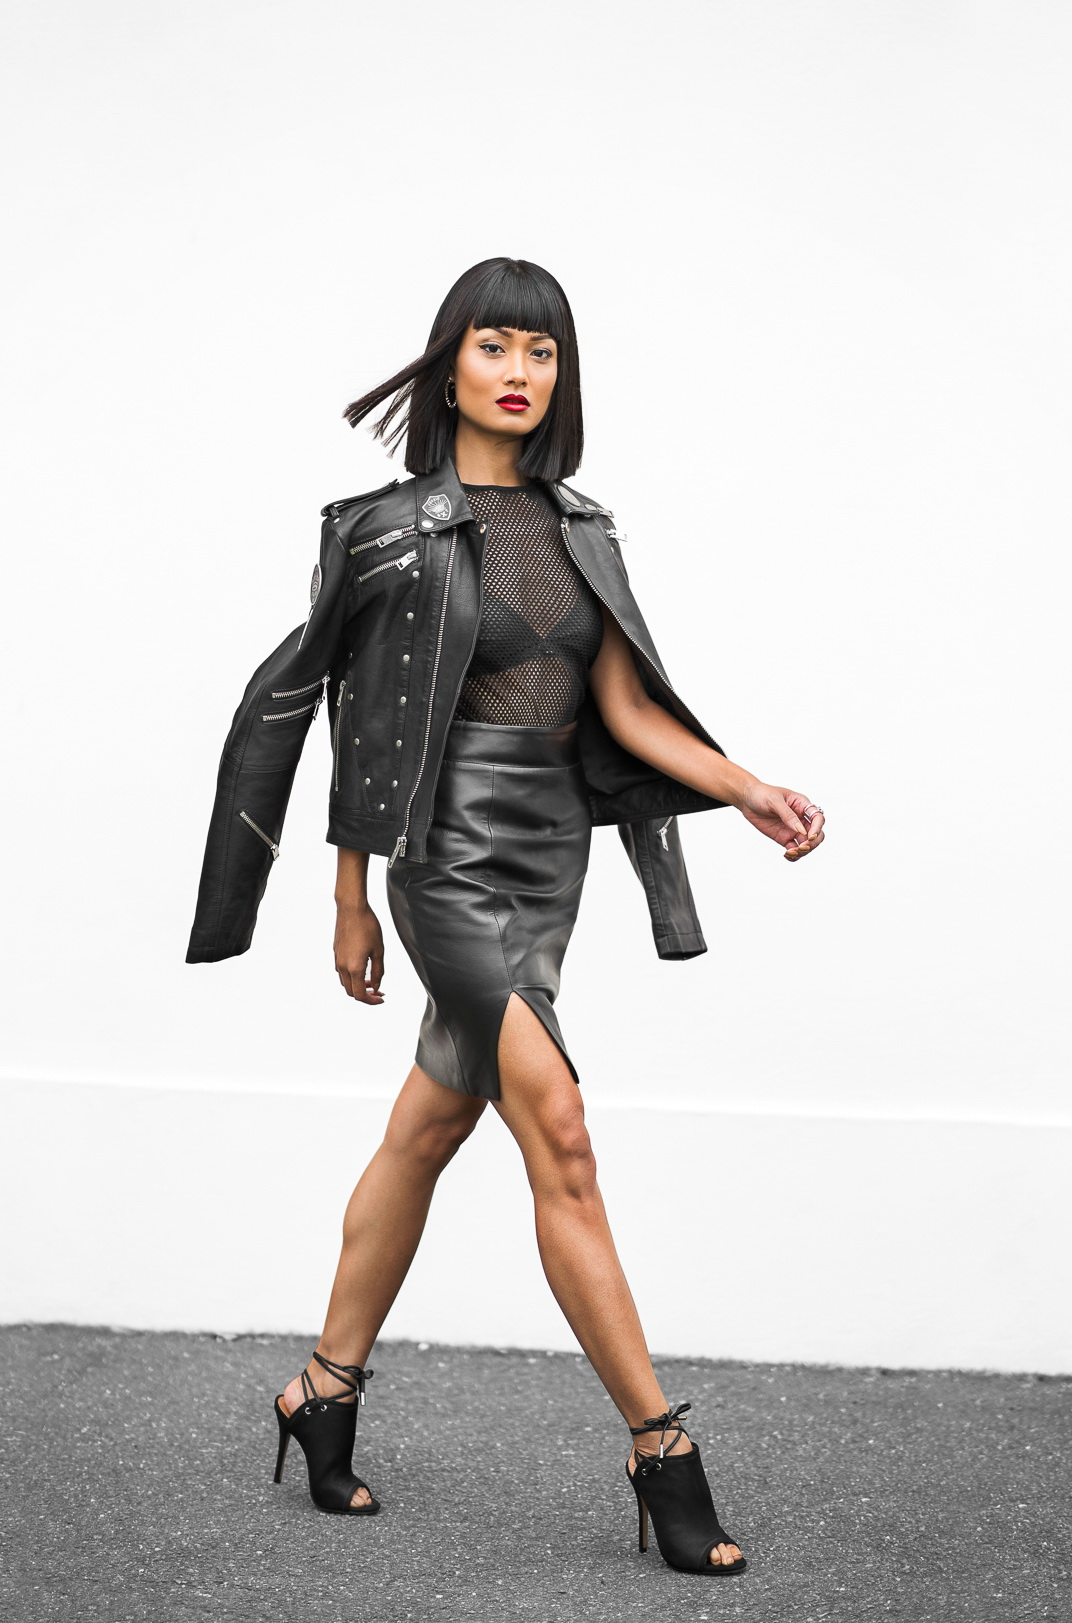 Leather Jackets Outfit Ideas 2020